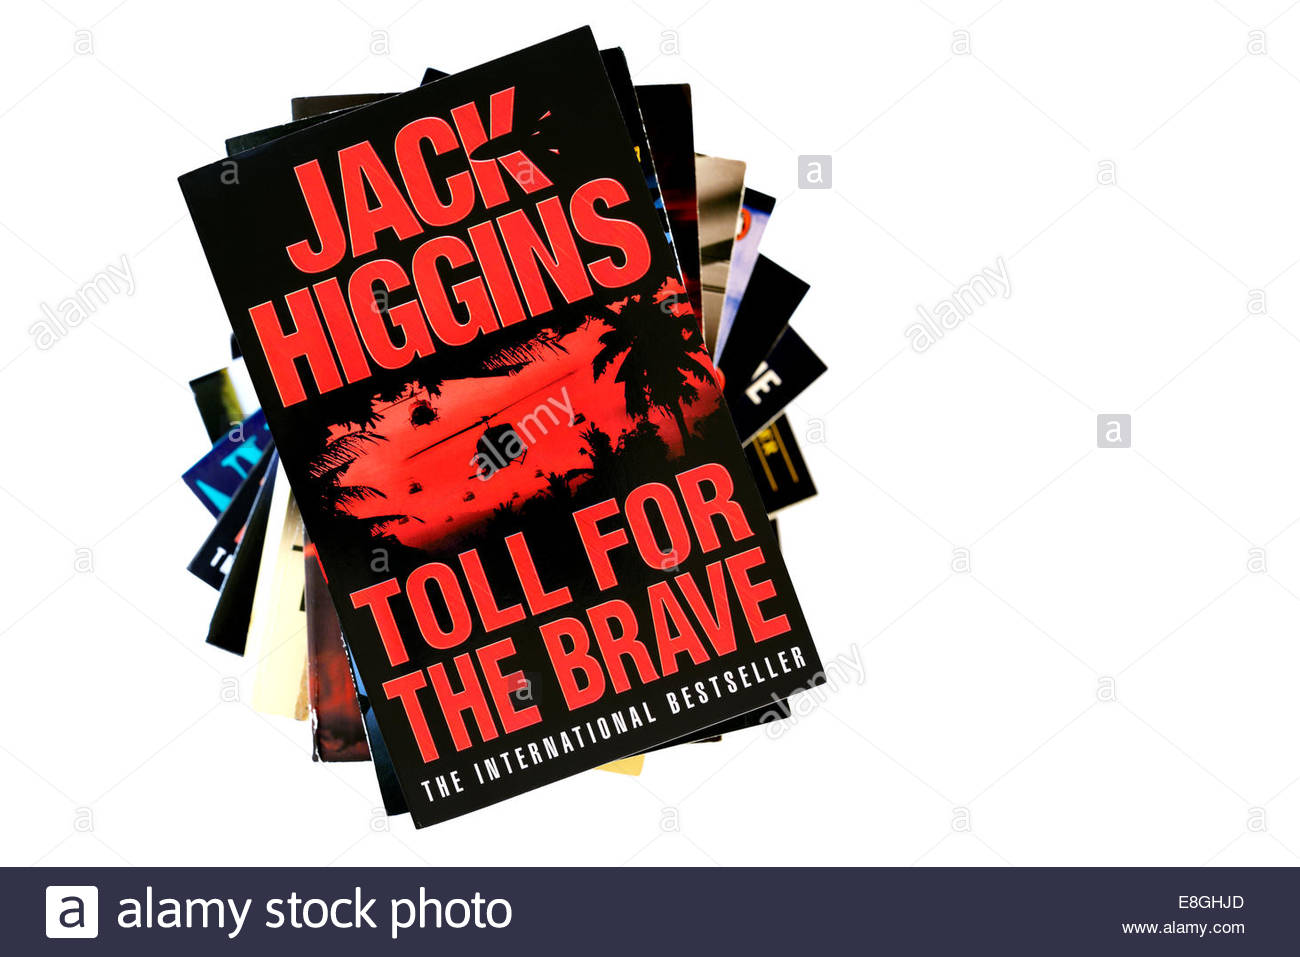 Jack Higgins book title Toll For The Brave, stacked used books, England - Stock Image